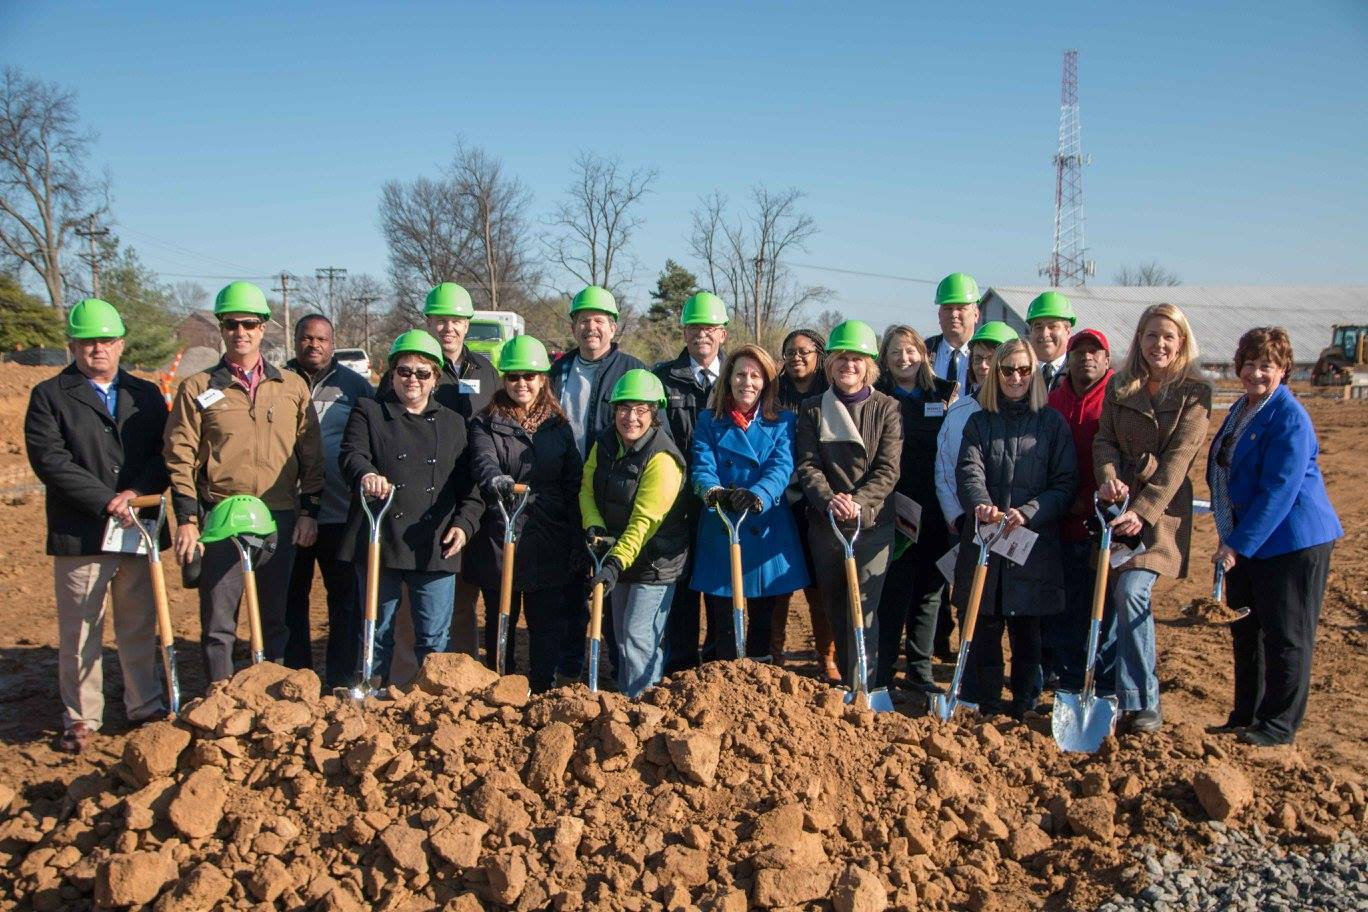 Groundbreaking Group Photo with City Workers